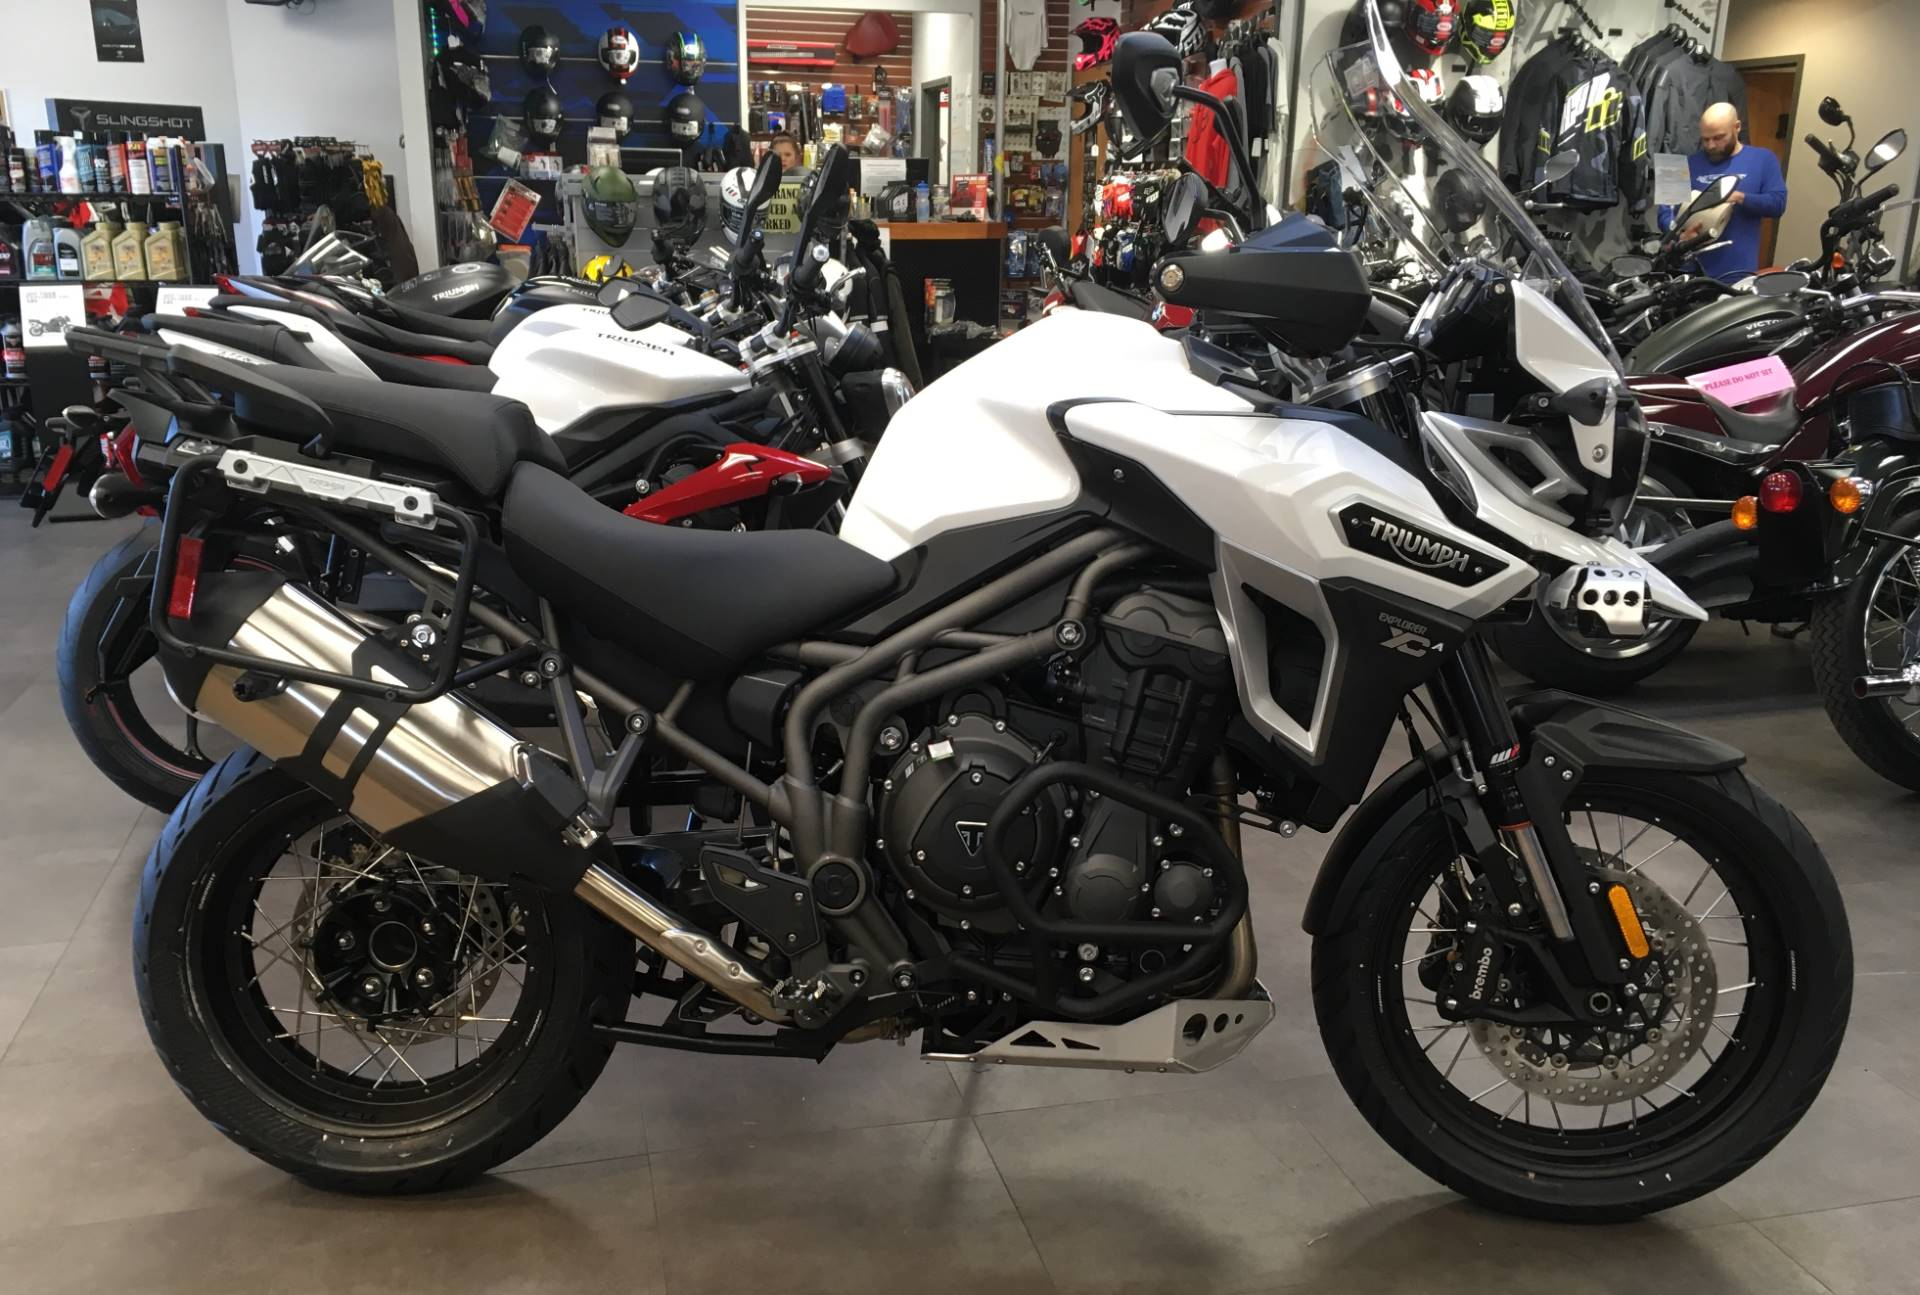 2017 Triumph Tiger Explorer XCA in Mahwah, New Jersey